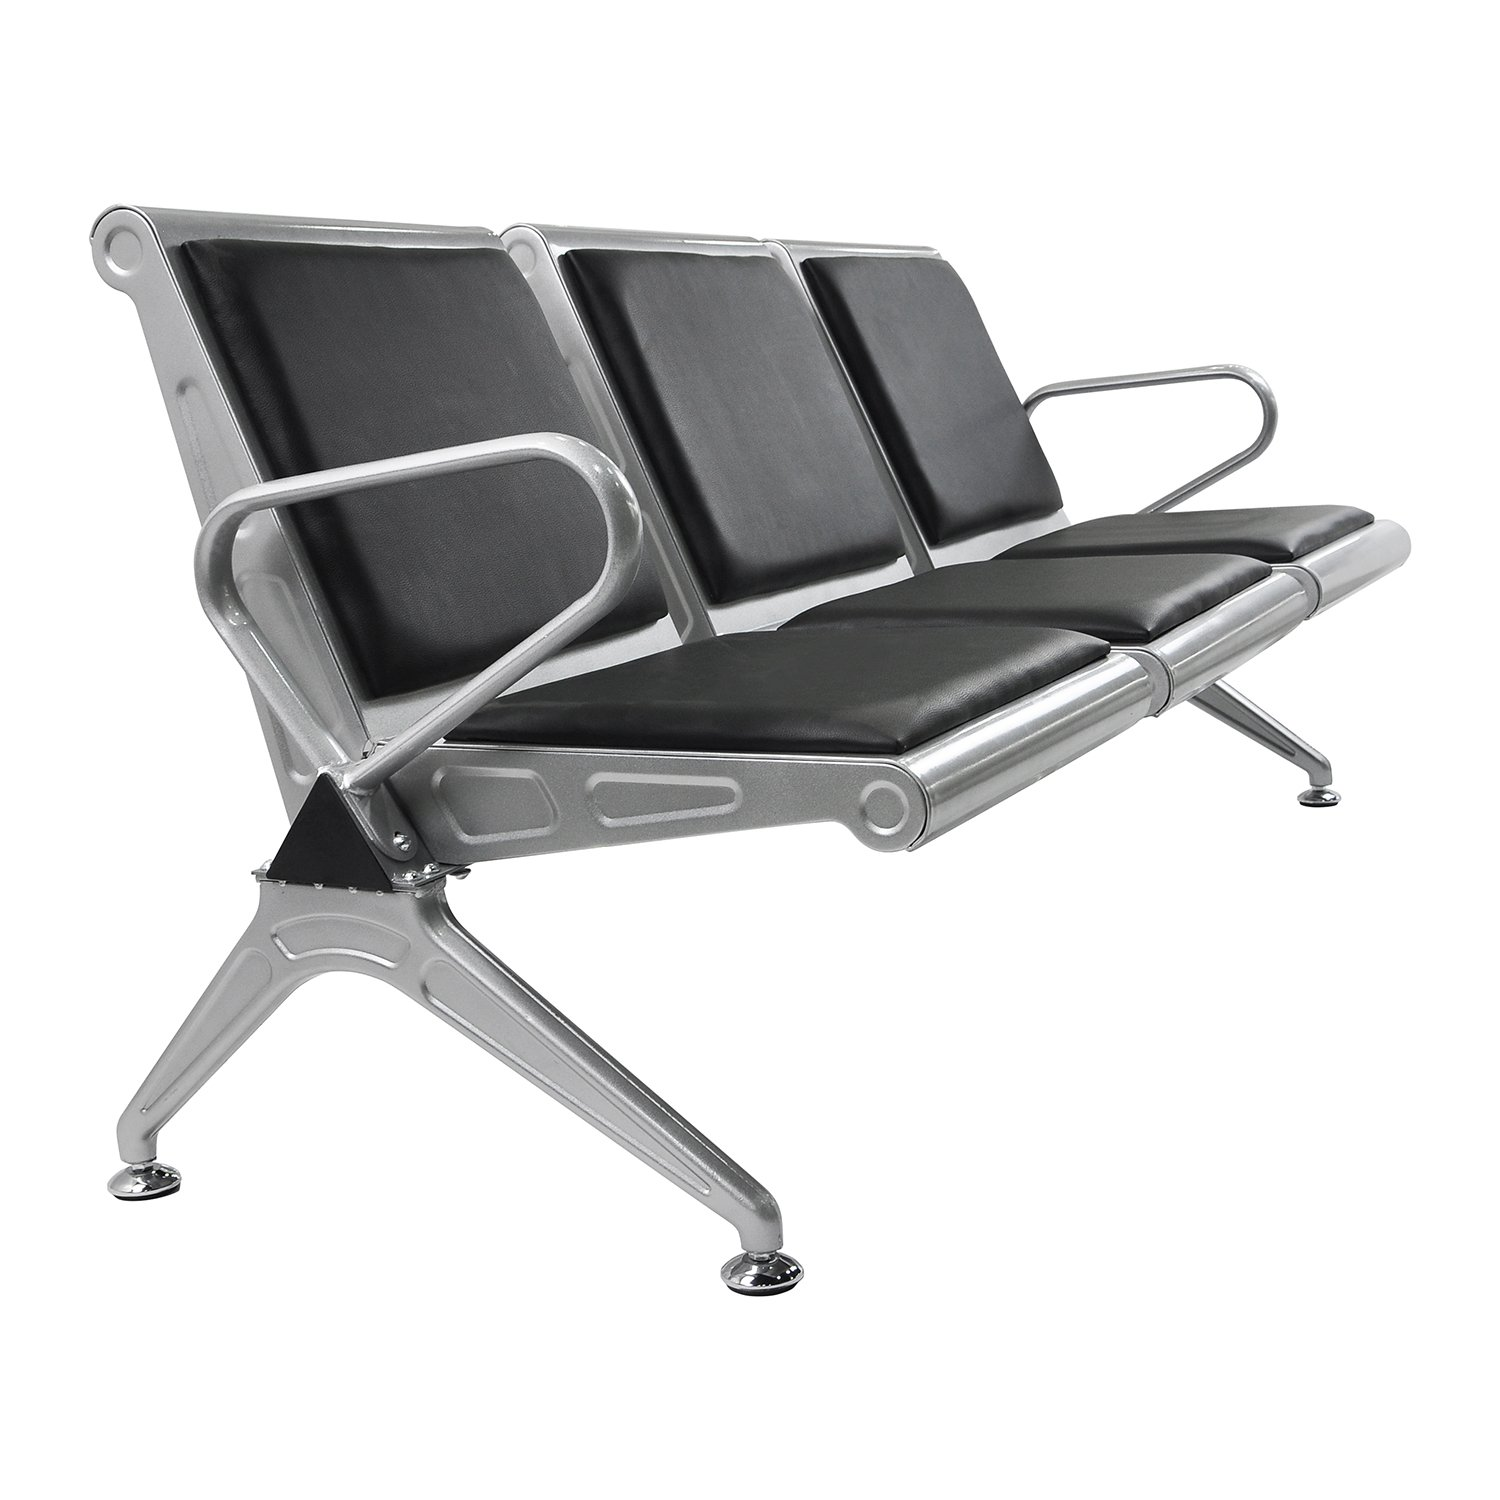 Sliverylake Heavy Duty Office Reception Area Airport Waiting Room Chair 3 Seat Bench Cushion